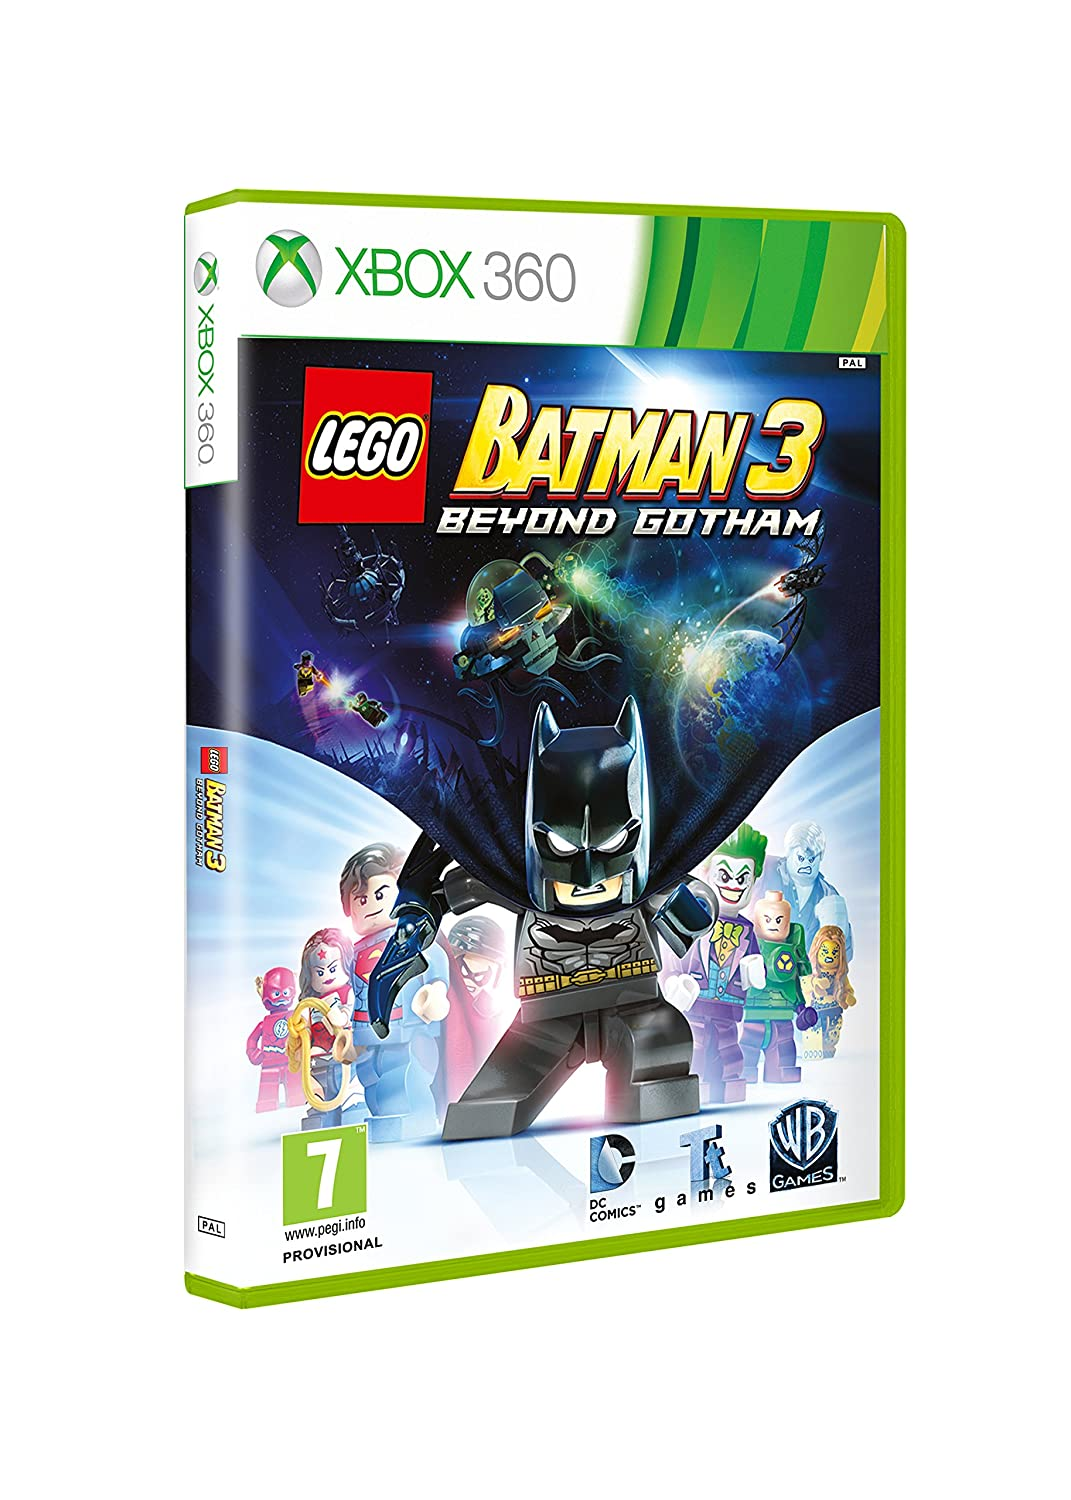 LEGO Batman 3: Beyond Gotham (Xbox 360) News and Videos